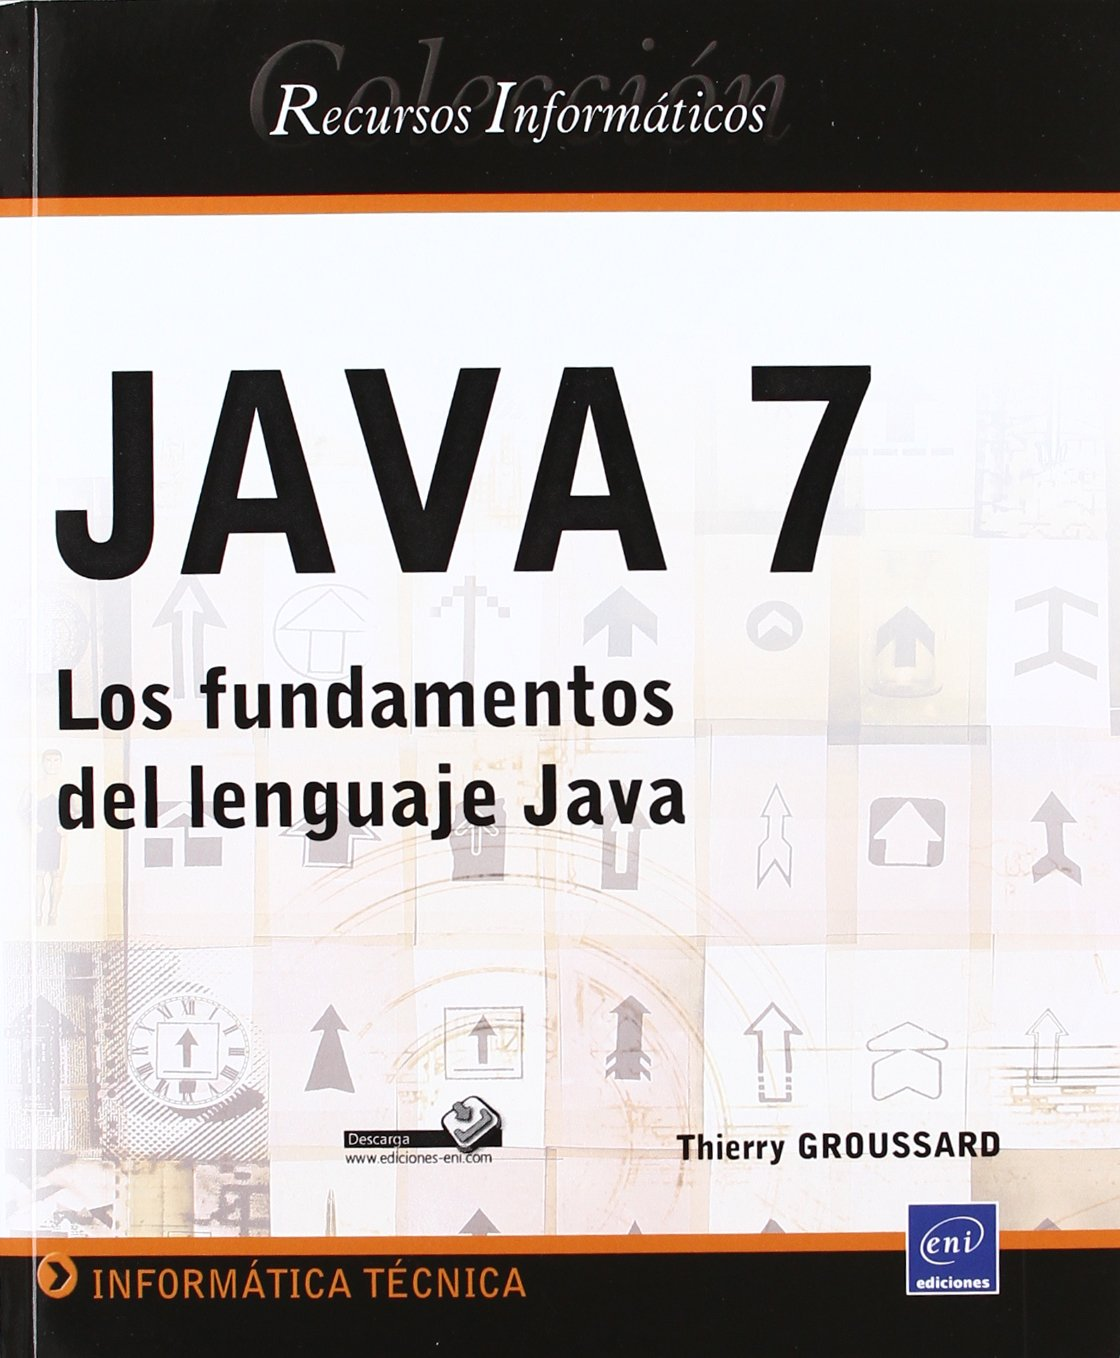 LOS FUNDAMENTOS DEL LENGUAJE JAVA: Amazon.es: THIERRY GROUSSARD: Libros